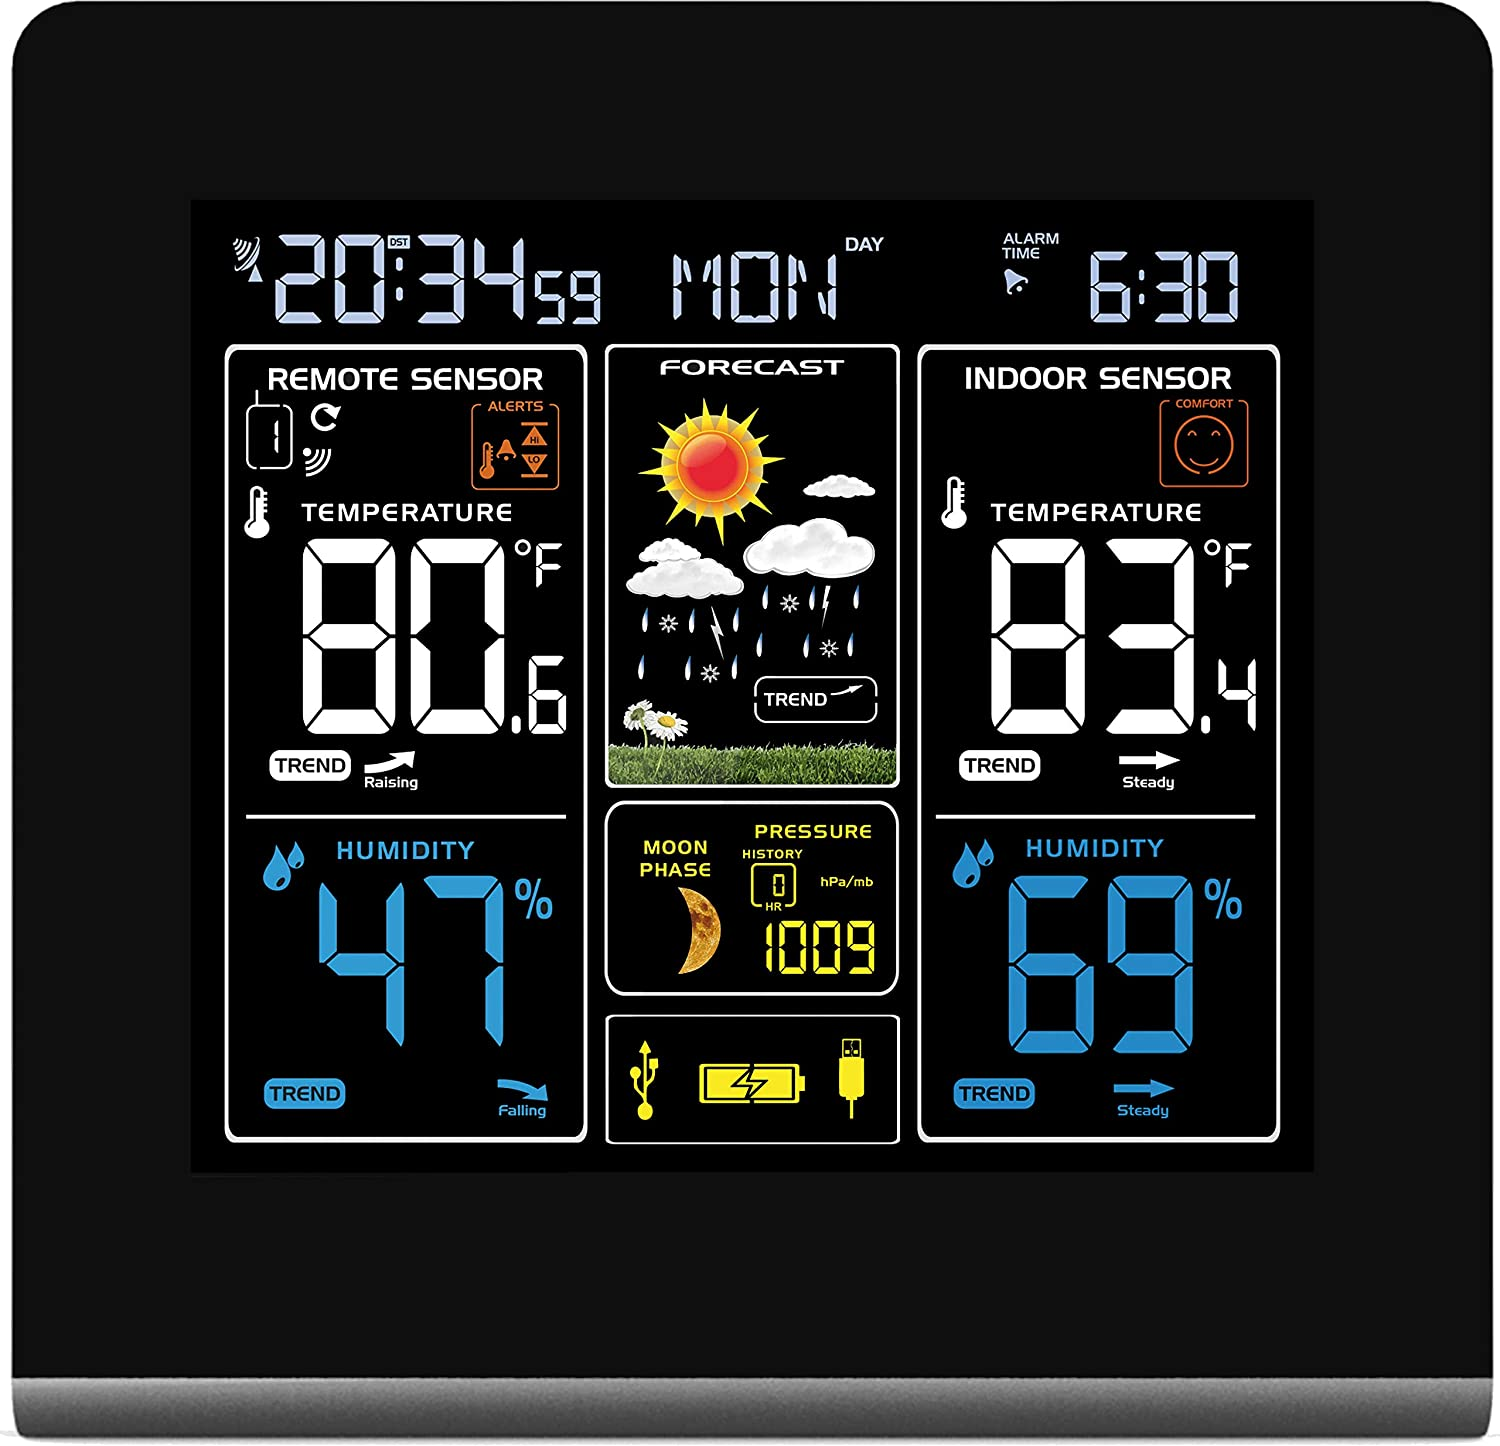 Wall-mountable Wireless Weather Station with Colour High Definition  Display, USB Charging Port, Alarms, Weather Forecasting/Temperature Display  and